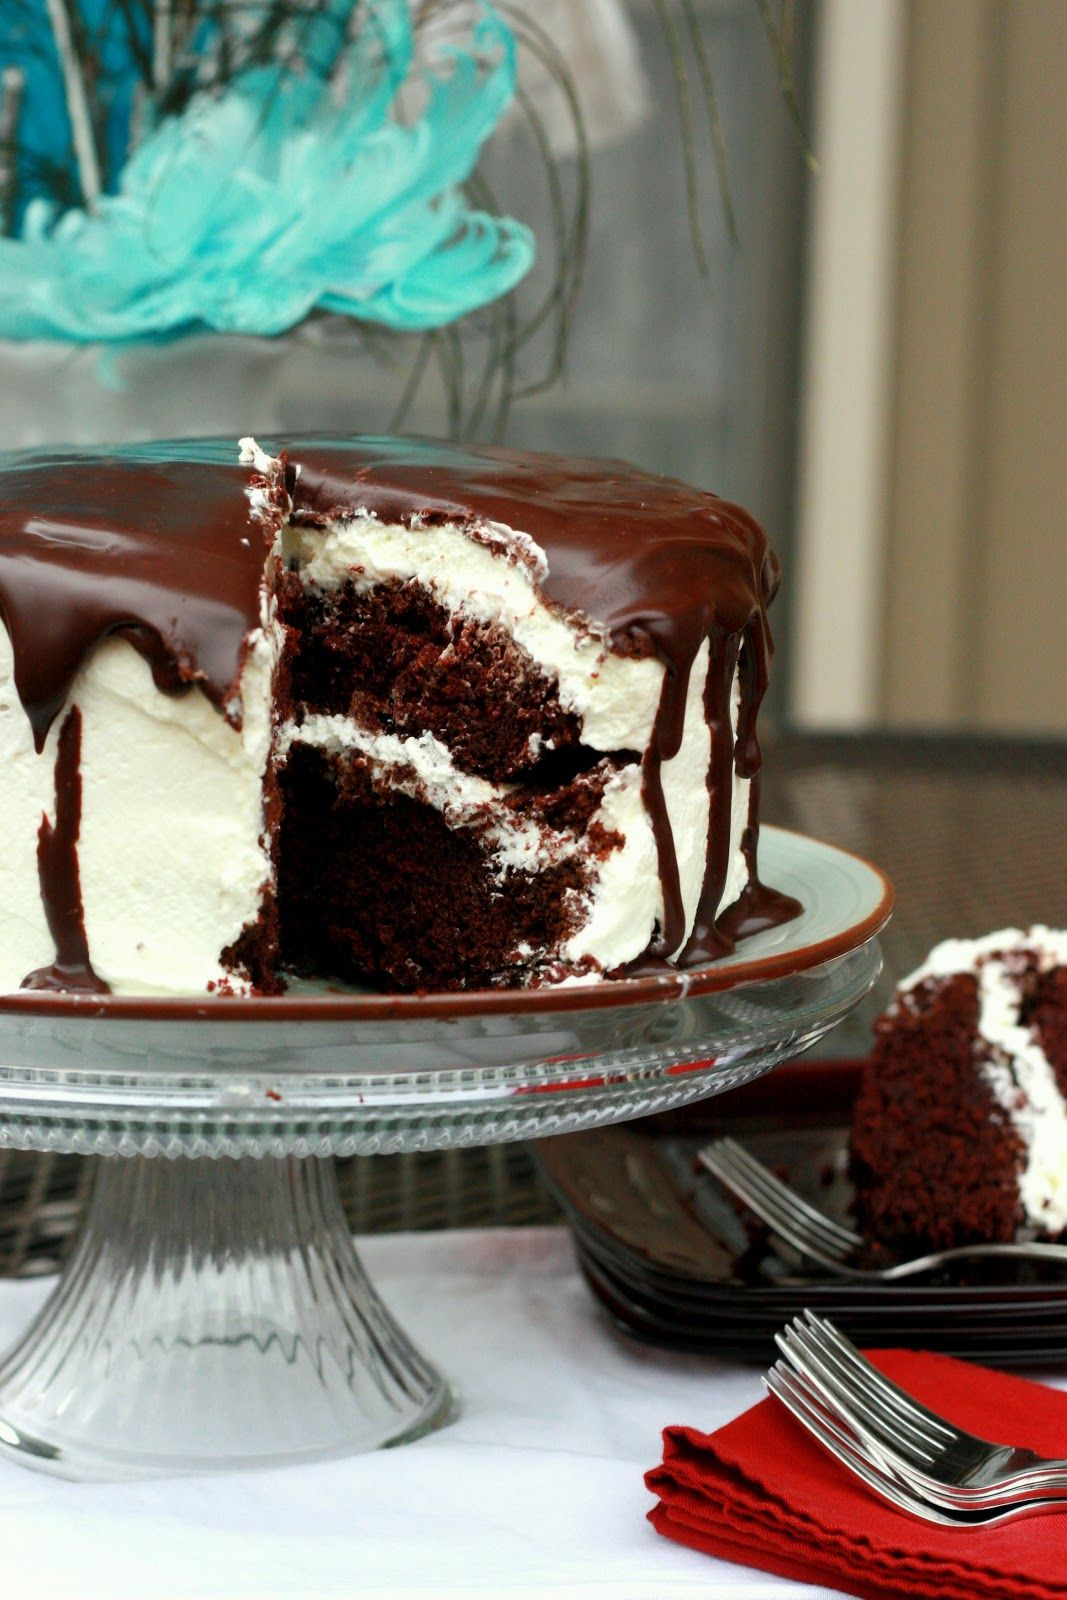 Tuxedo Cake With Whipped Cream Frosting Chocolate Ganache Glaze Great For Weddings Or Fancy